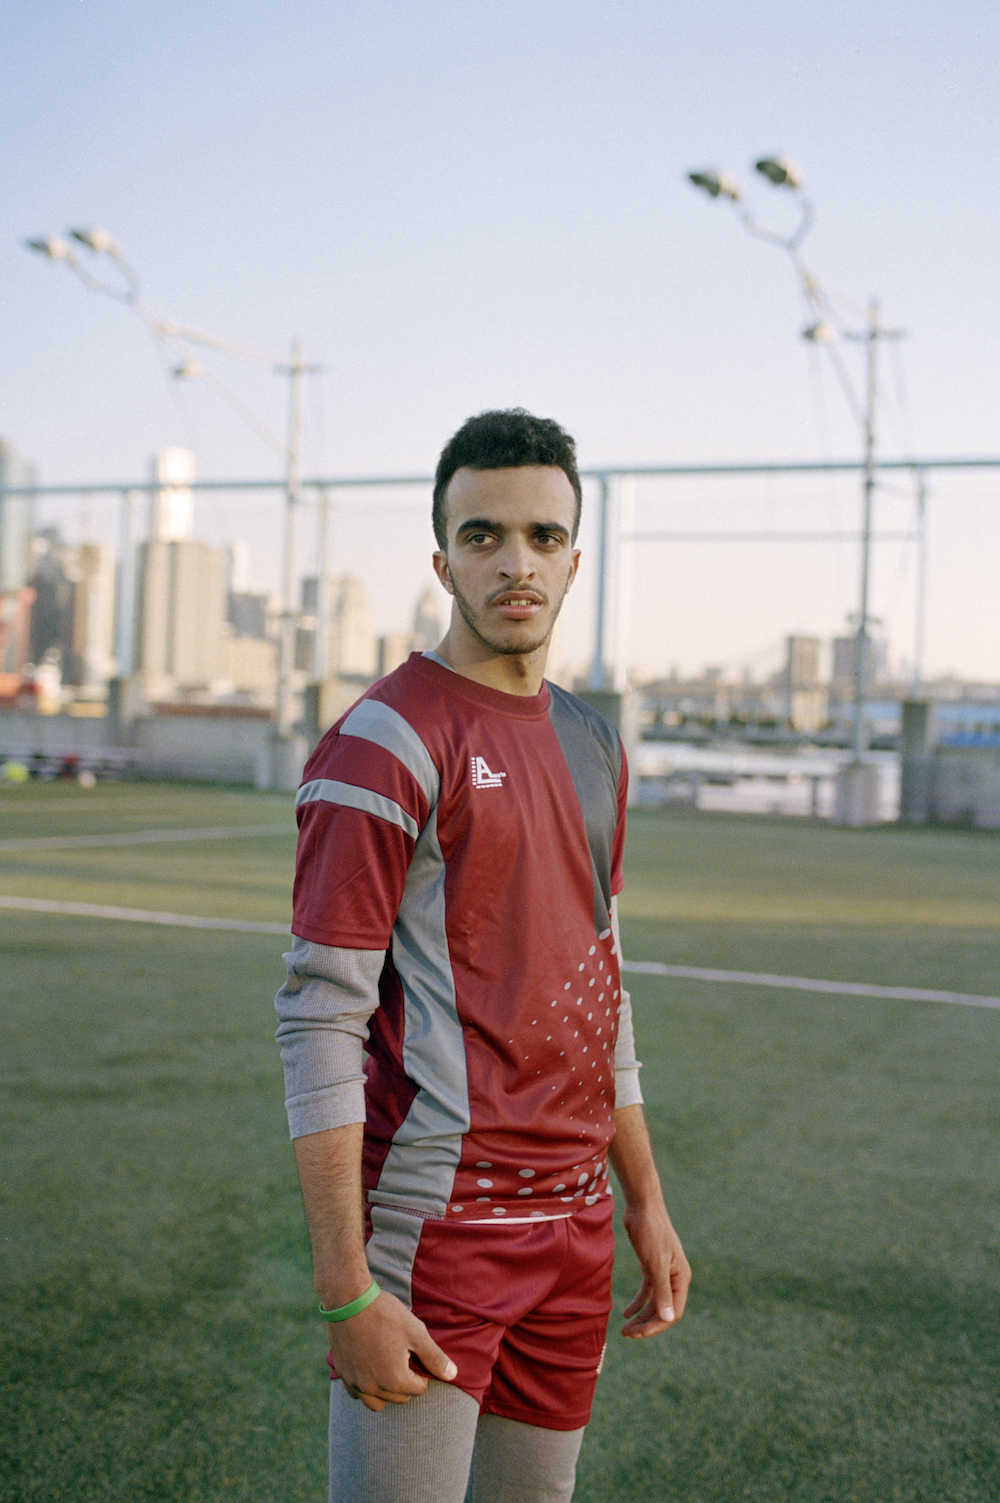 Hamoud Almathil on the field during a training session on an early Saturday morning in Brooklyn, New York.